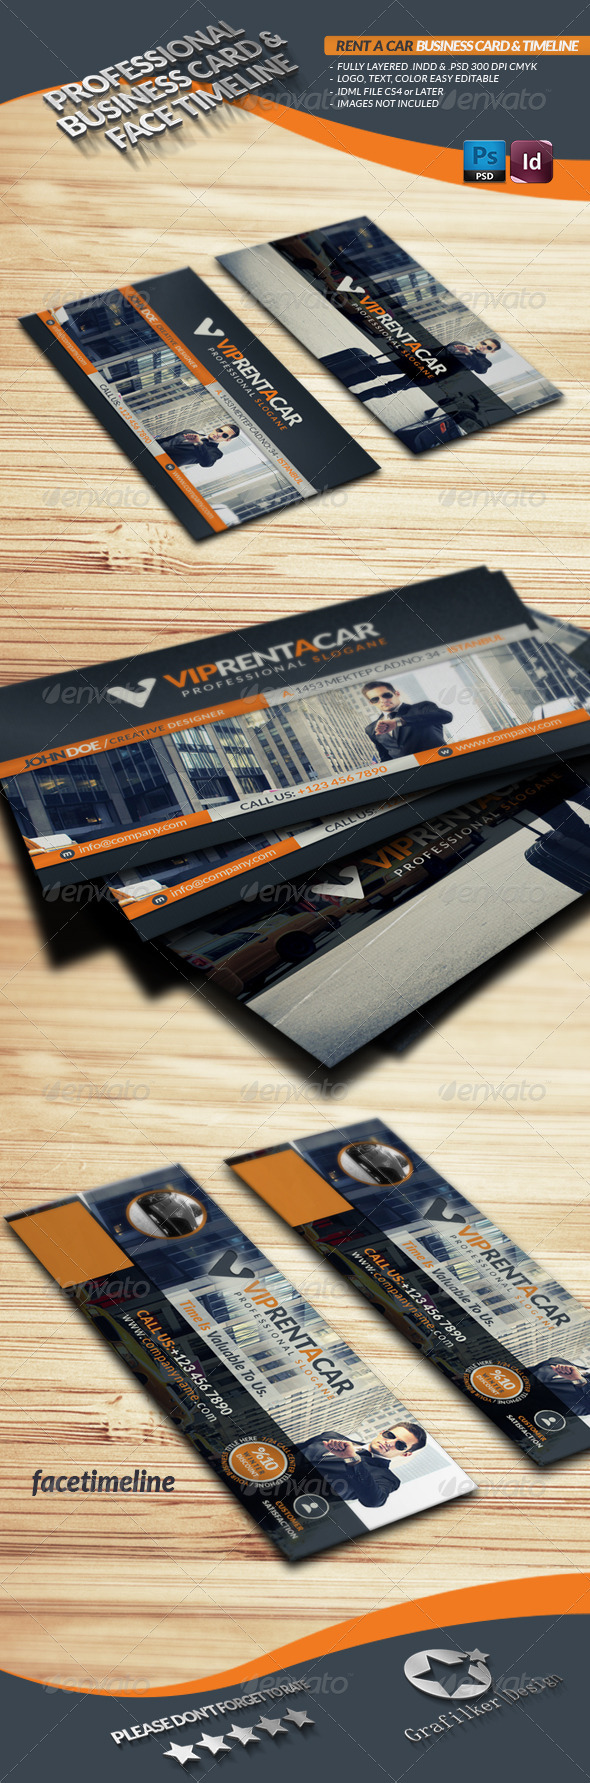 GraphicRiver Rent A Car Business Card & Face Timeline 3806273